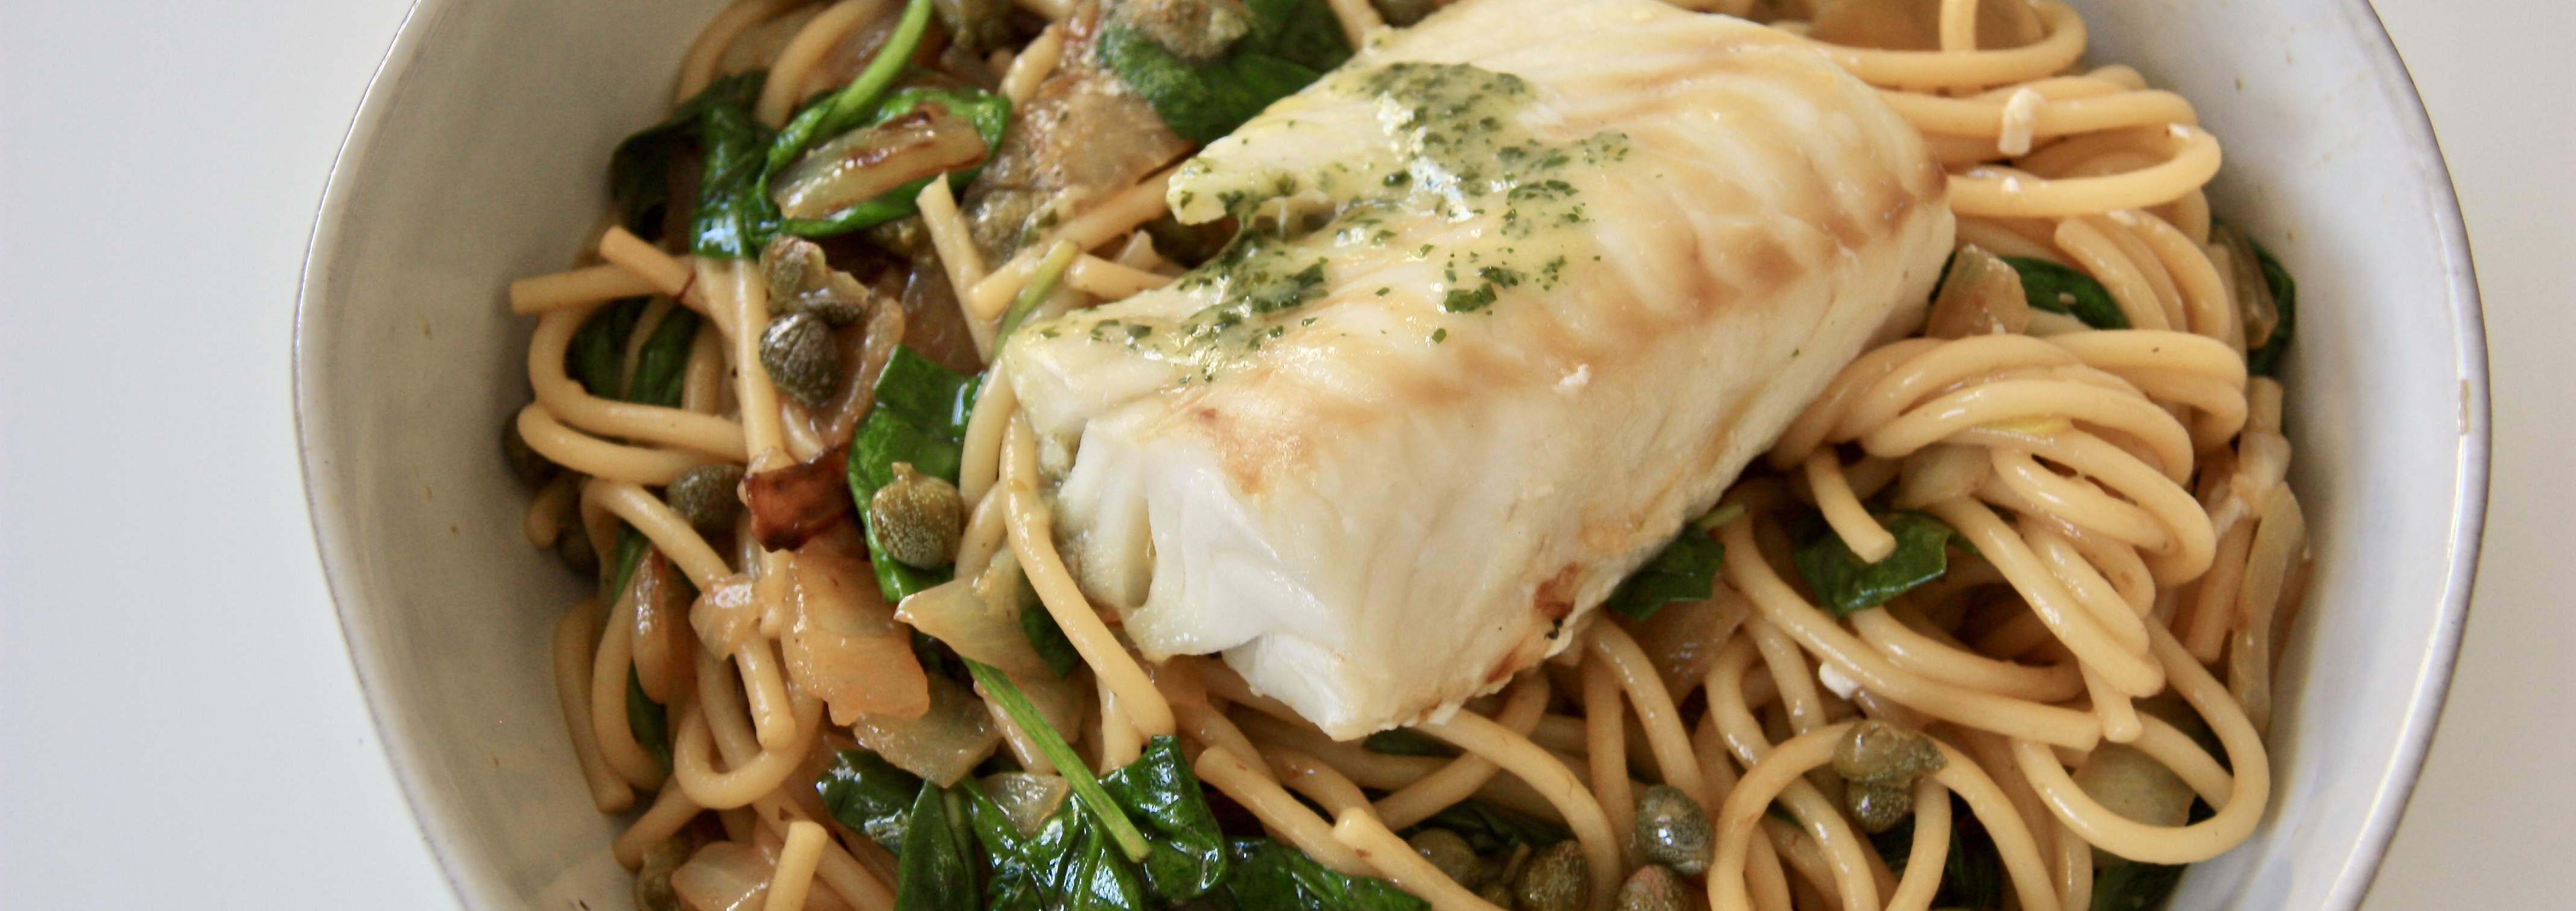 Steamed Delicious Cod Loins with Lemon Spinach Spaghetti